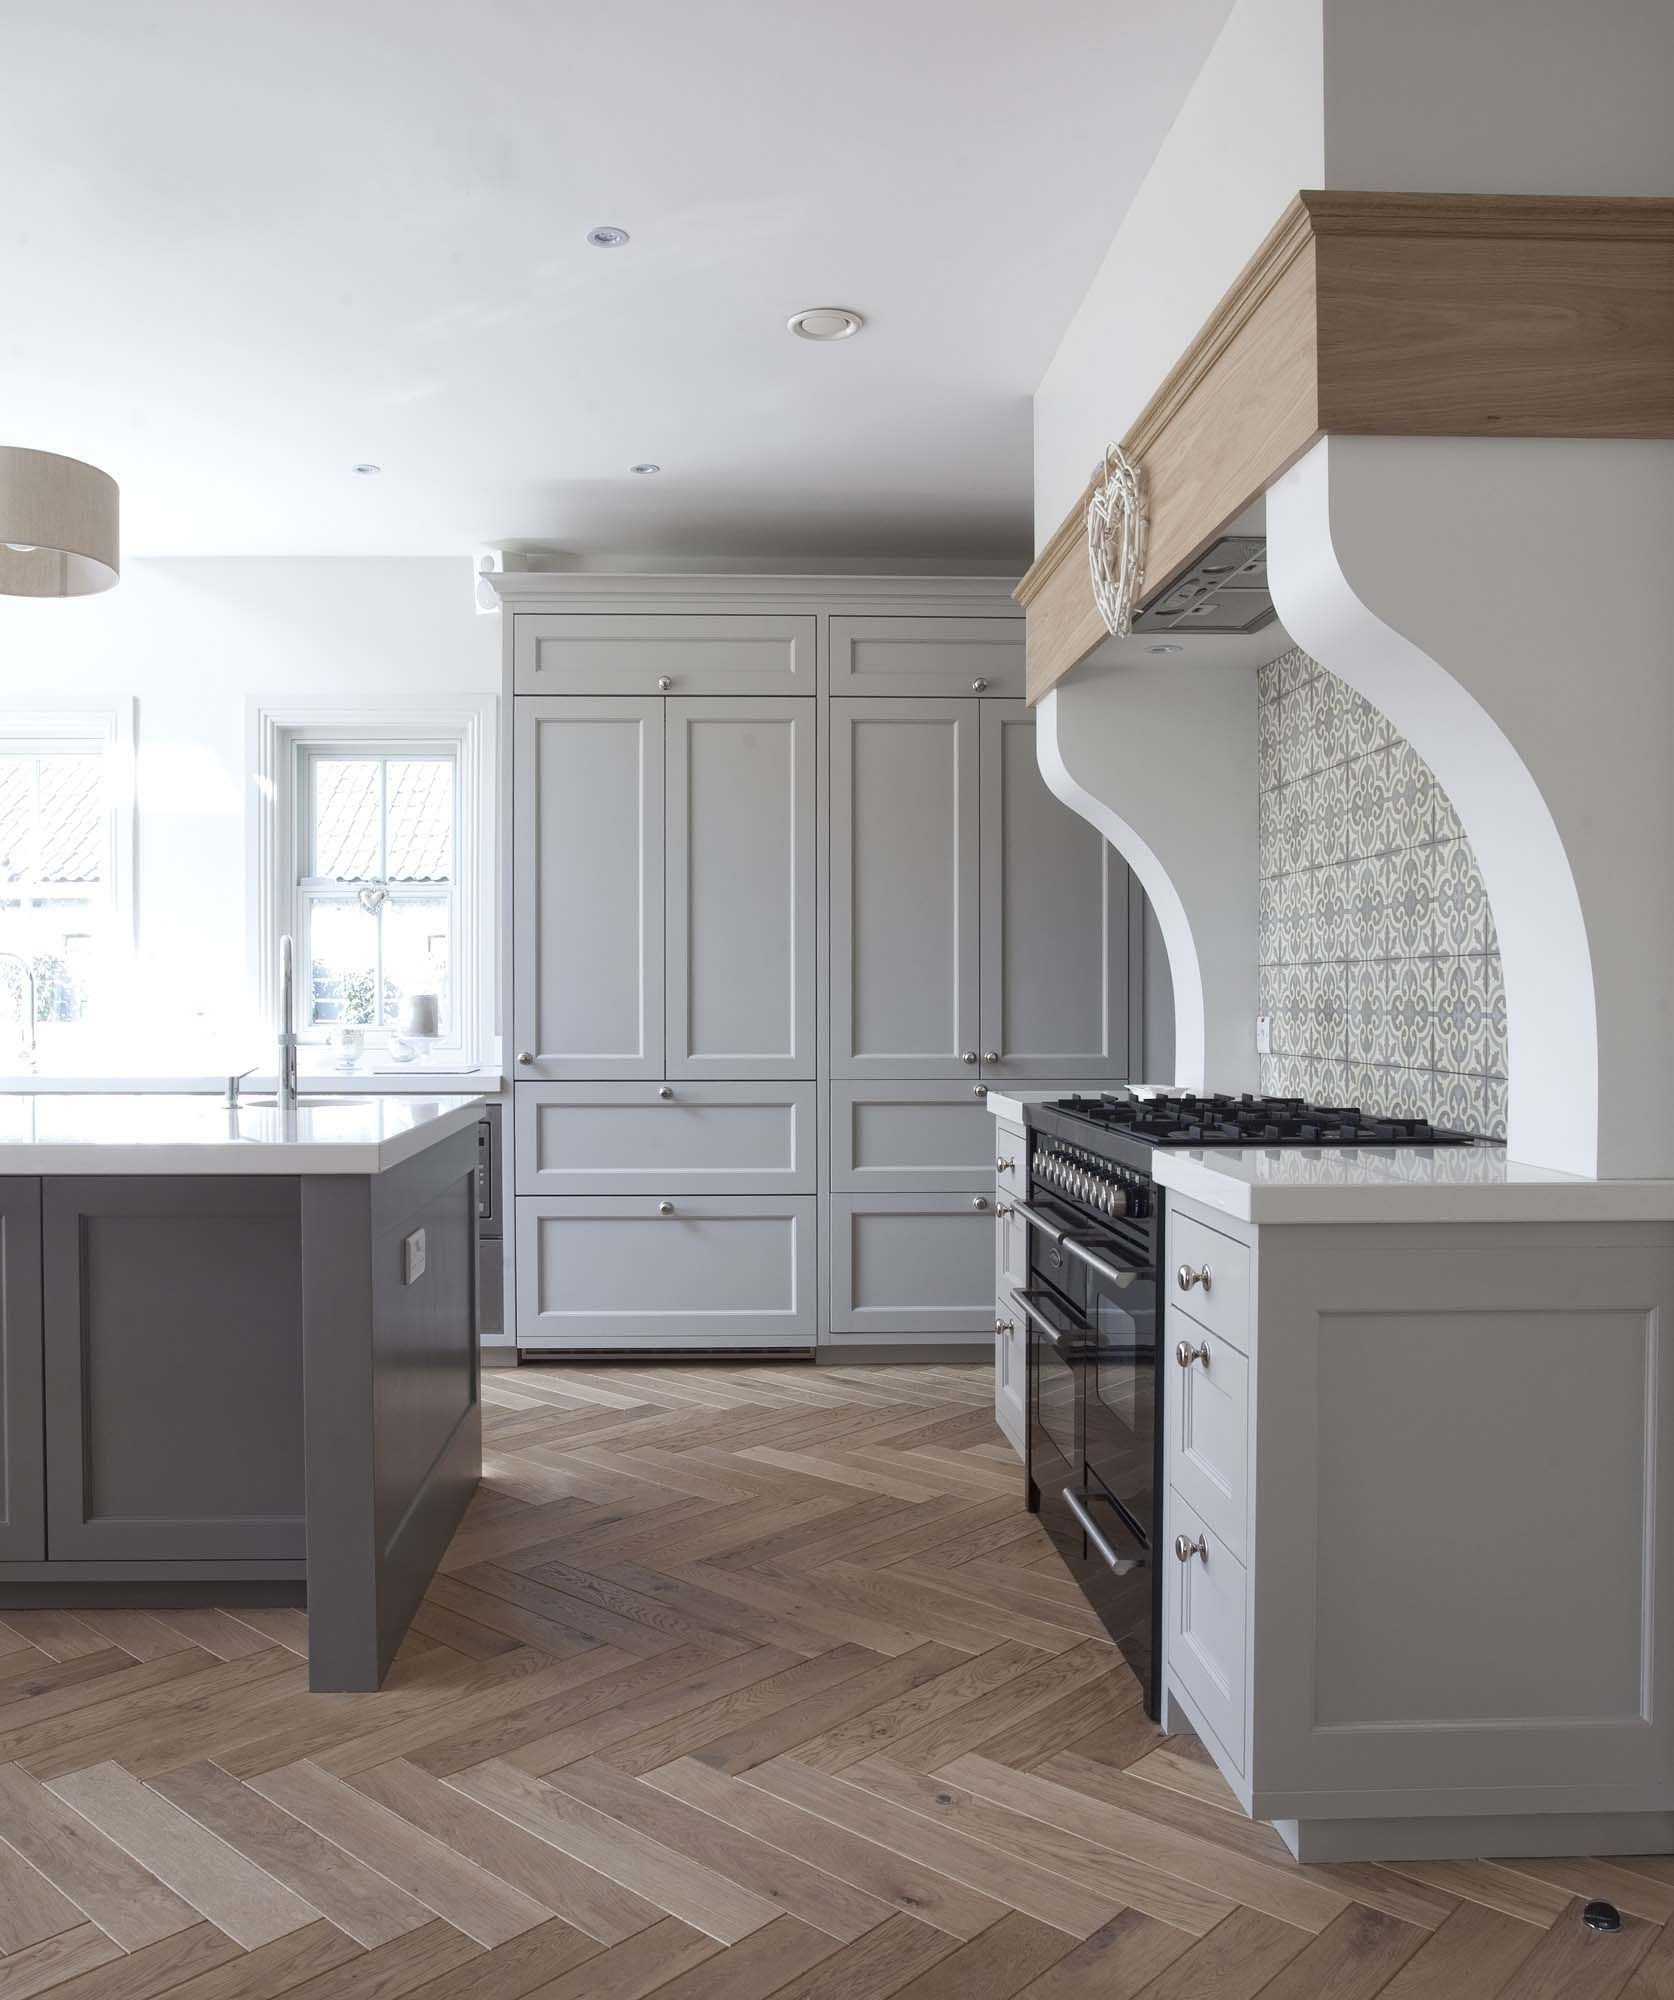 Classic kitchen design with a focus on country chic a creative yet